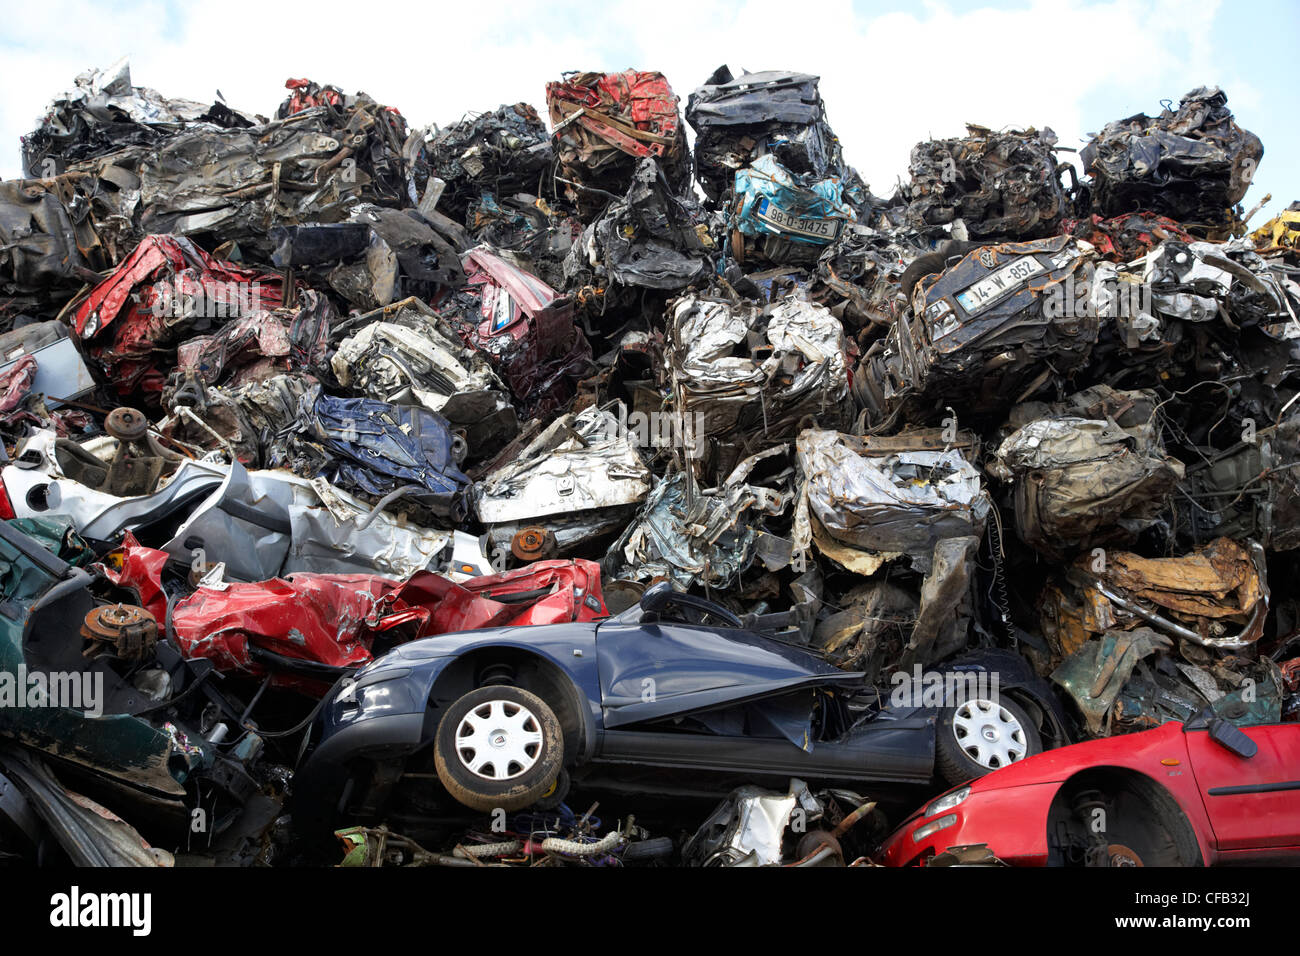 piles of crushed scrapped cars at metal recycling site Belfast Northern Ireland UK - Stock Image